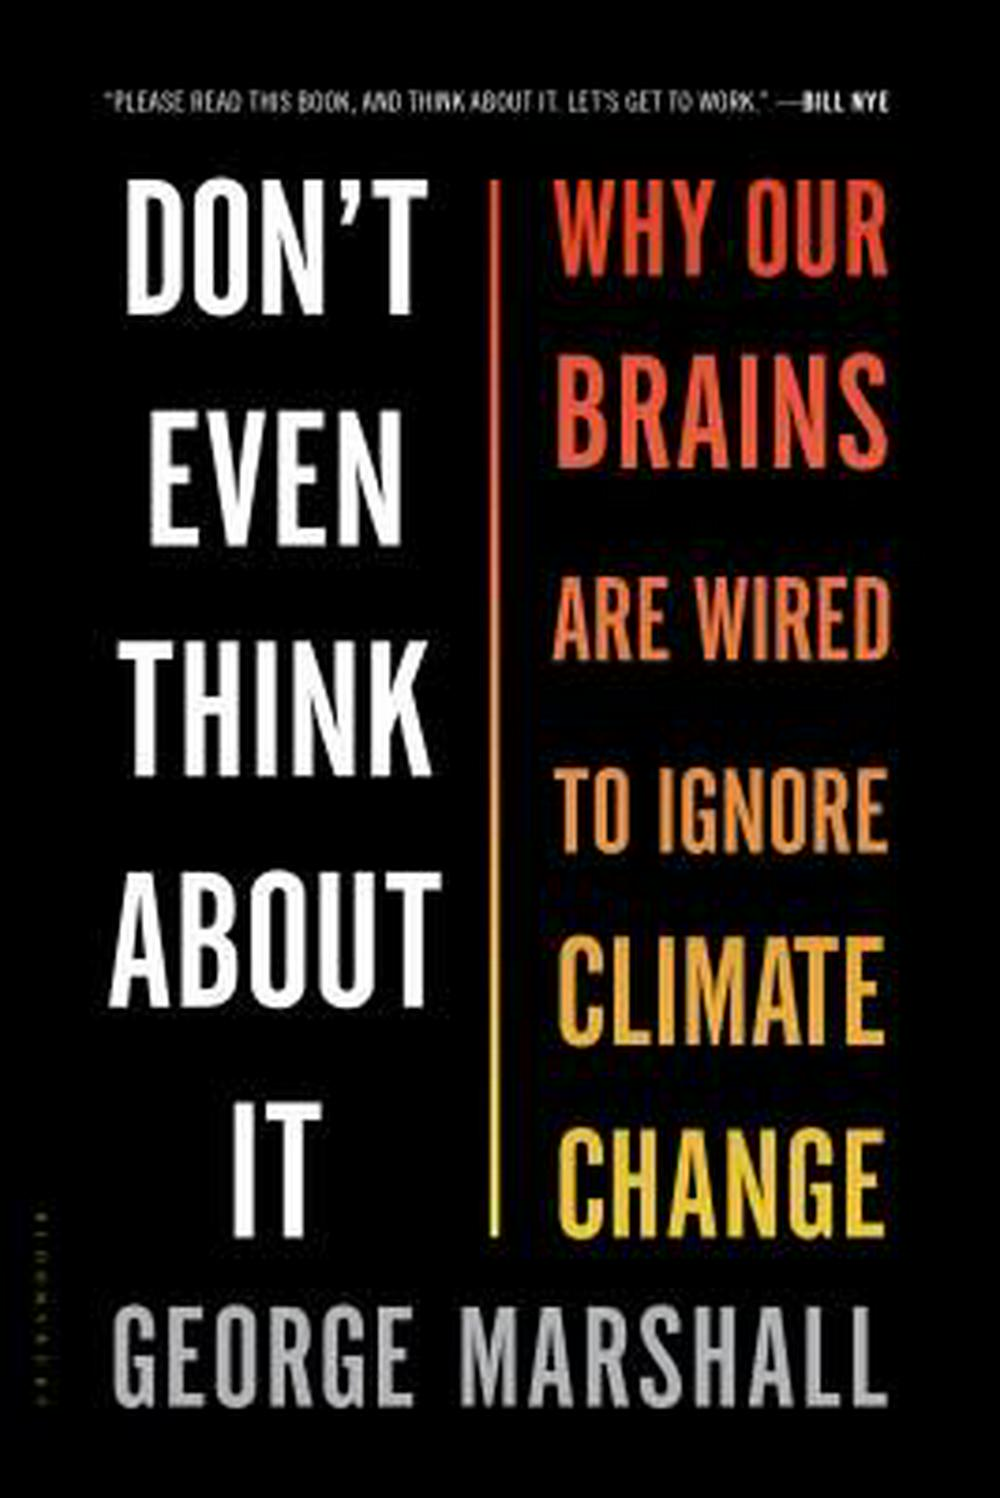 Don't Even Think about It: Why Our Brains Are Wired to Ignore Climate Change by George Marshall, ISBN: 9781632861023